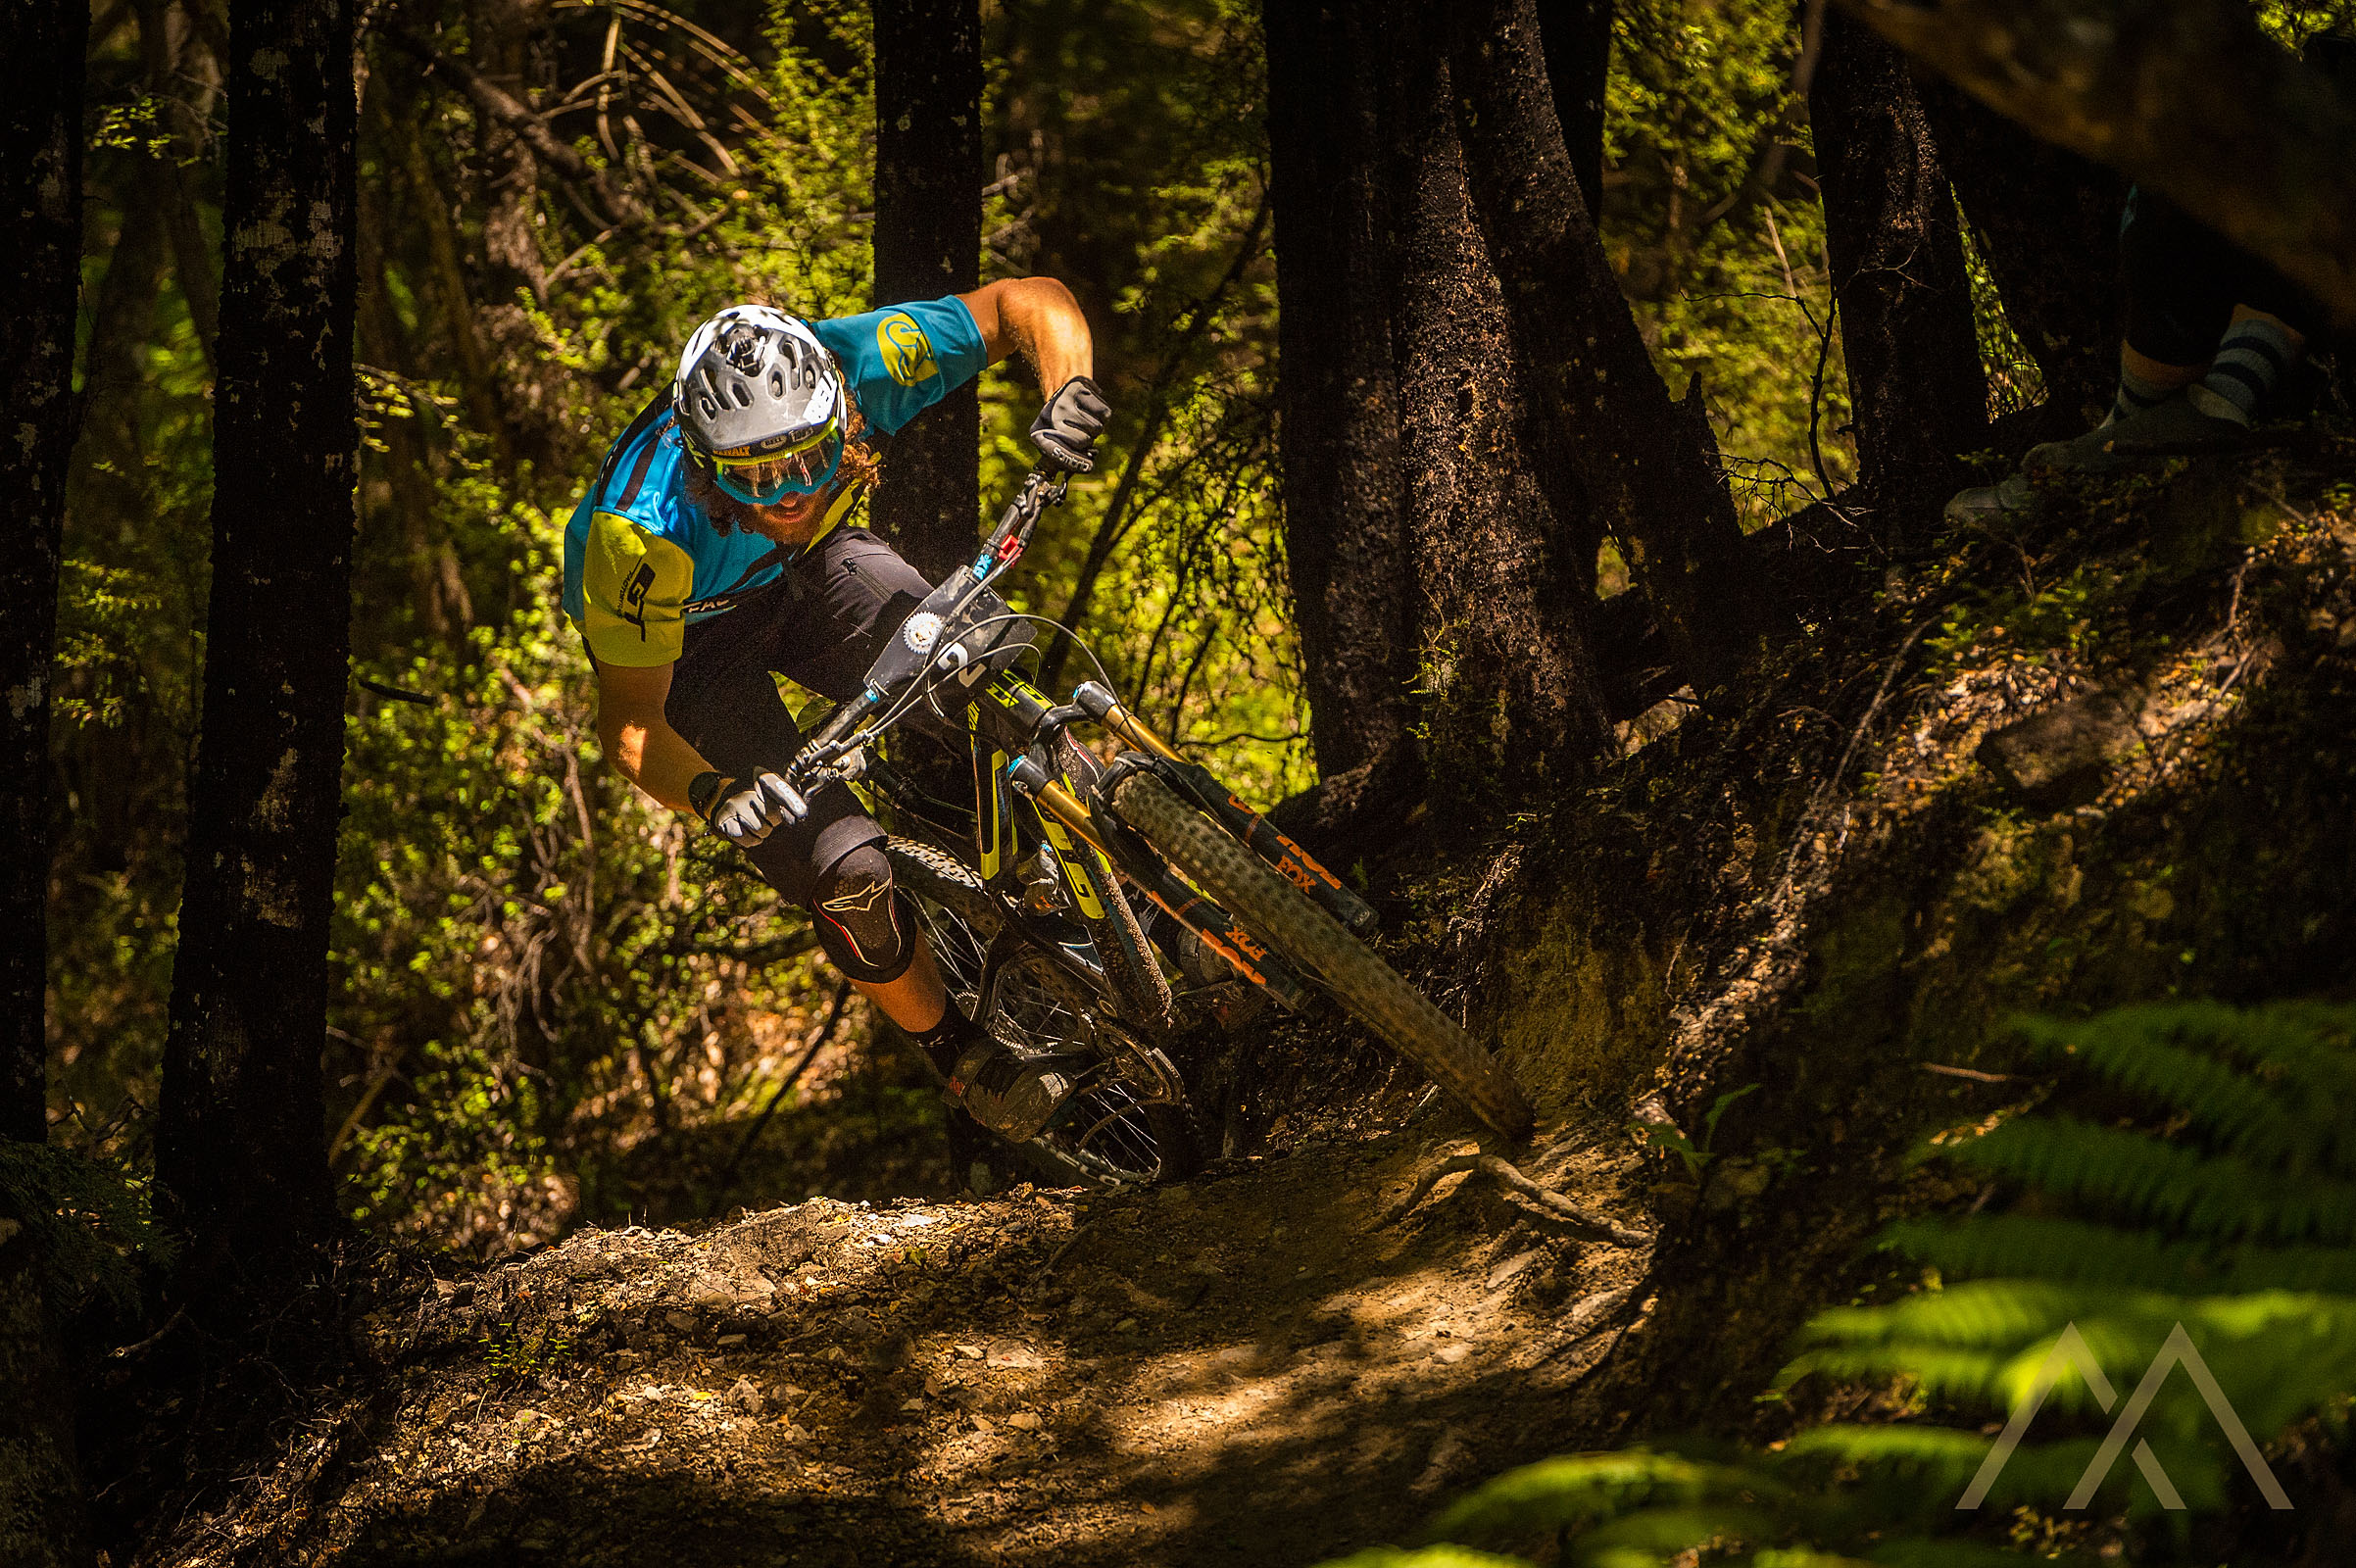 Wyn Masters on the hunt for the podium. Image: Mark Bridgwater